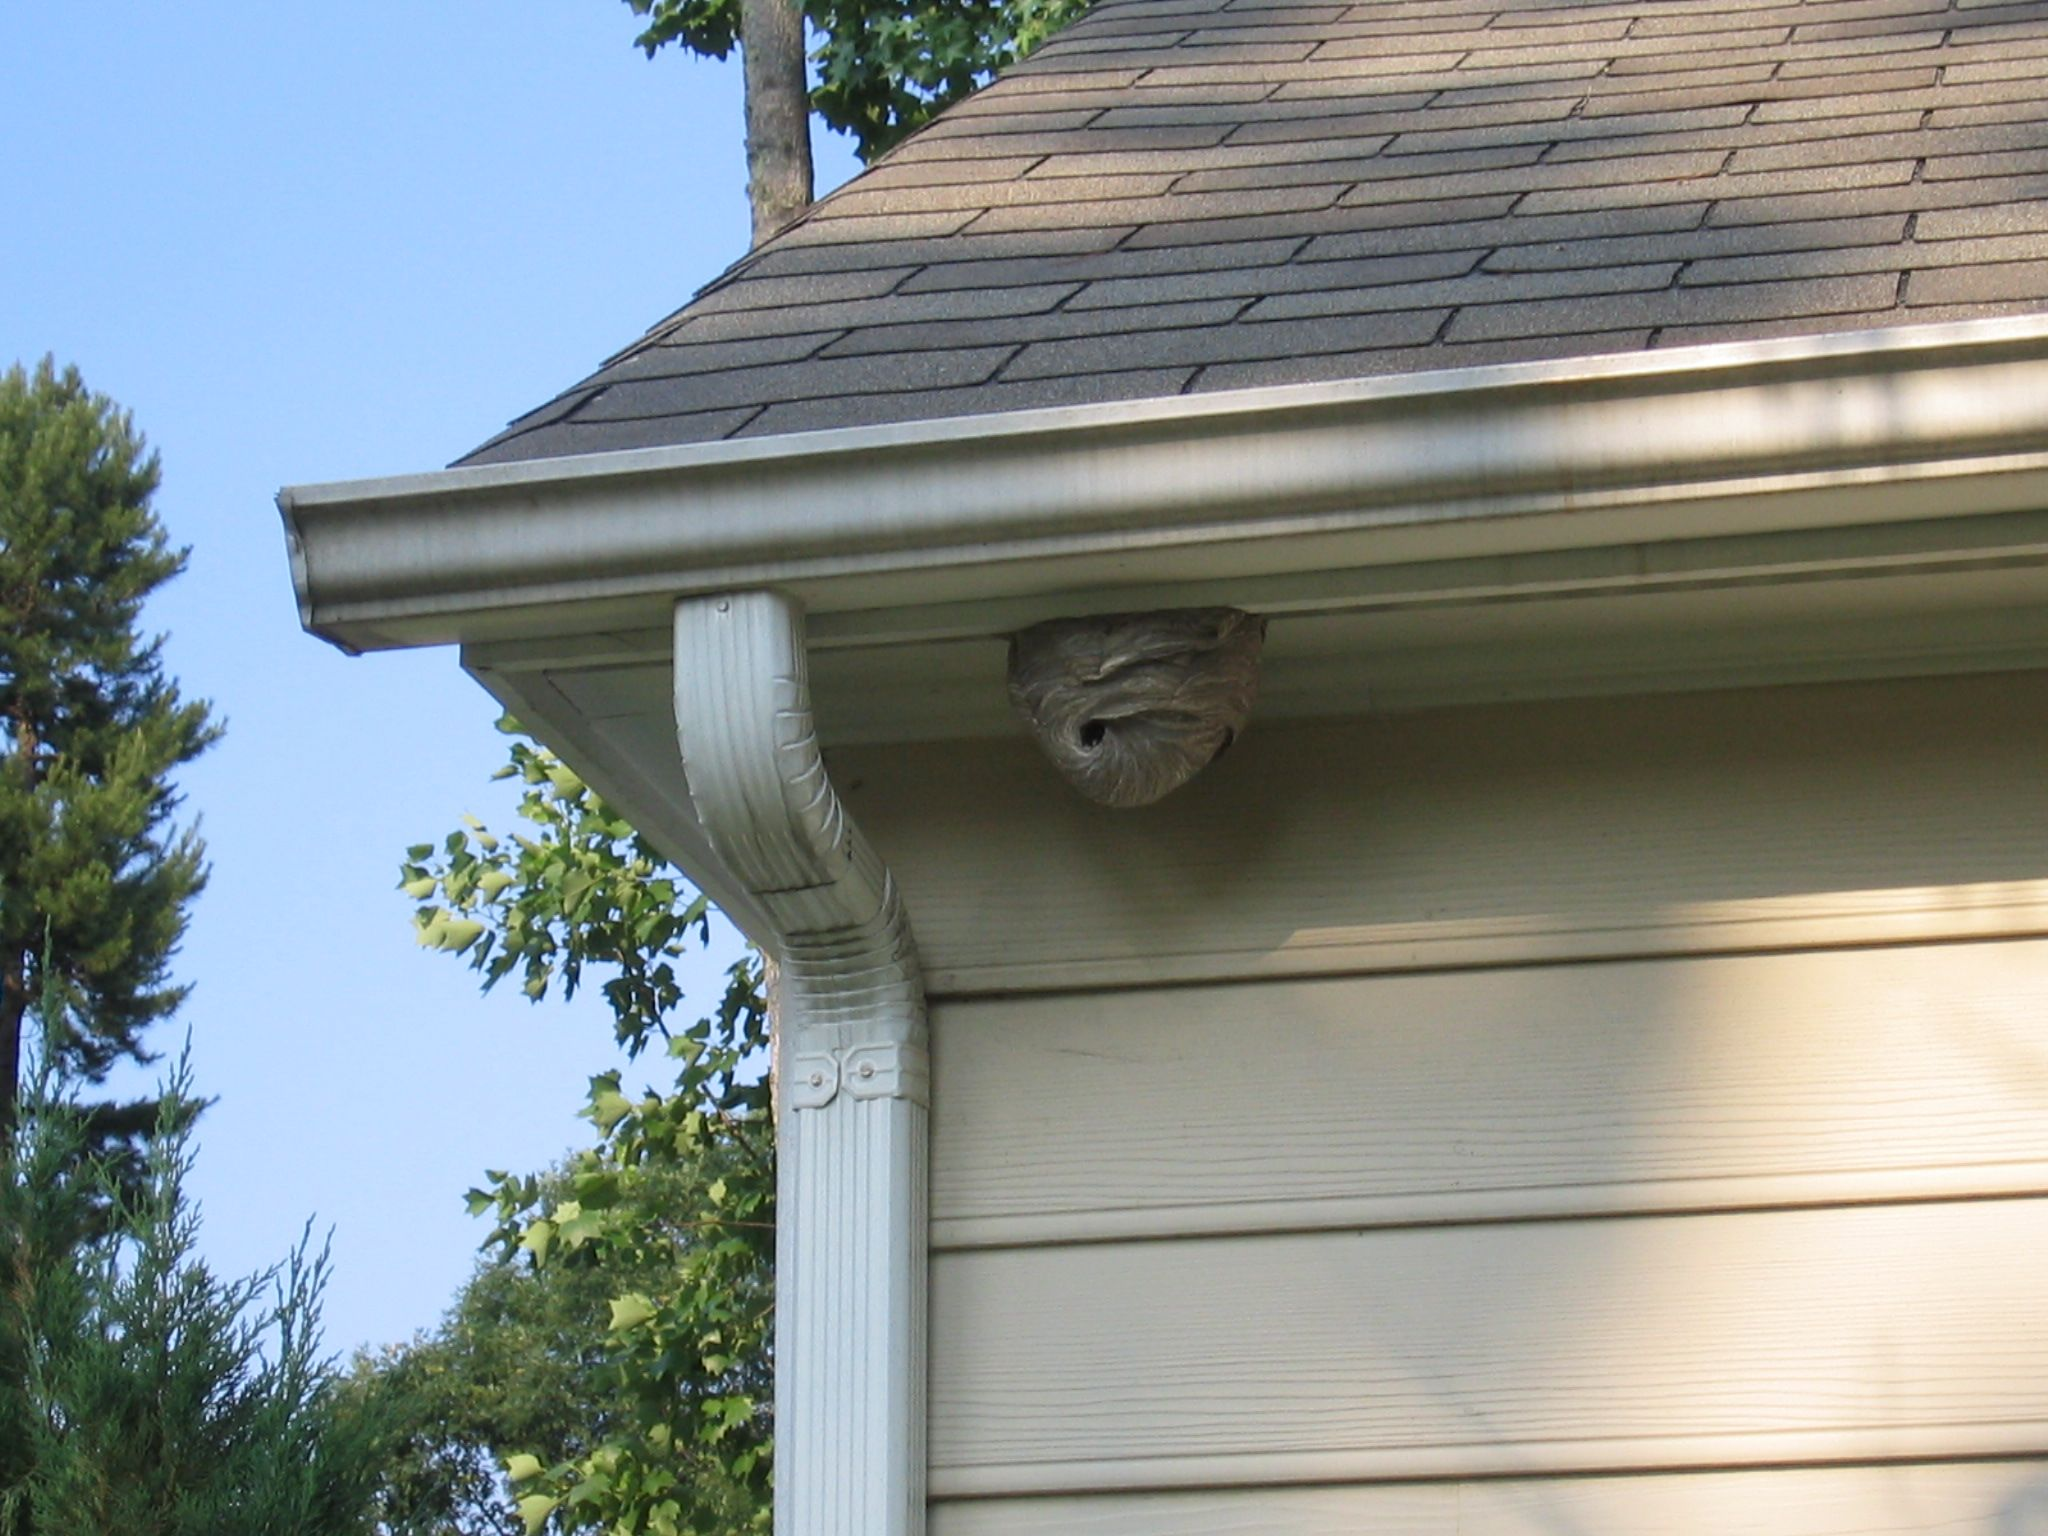 Hornet Nest Removal How To Get Rid Of Hornets Safely And Easily Wasp Nest Hornets Nest Bees Nest Removal